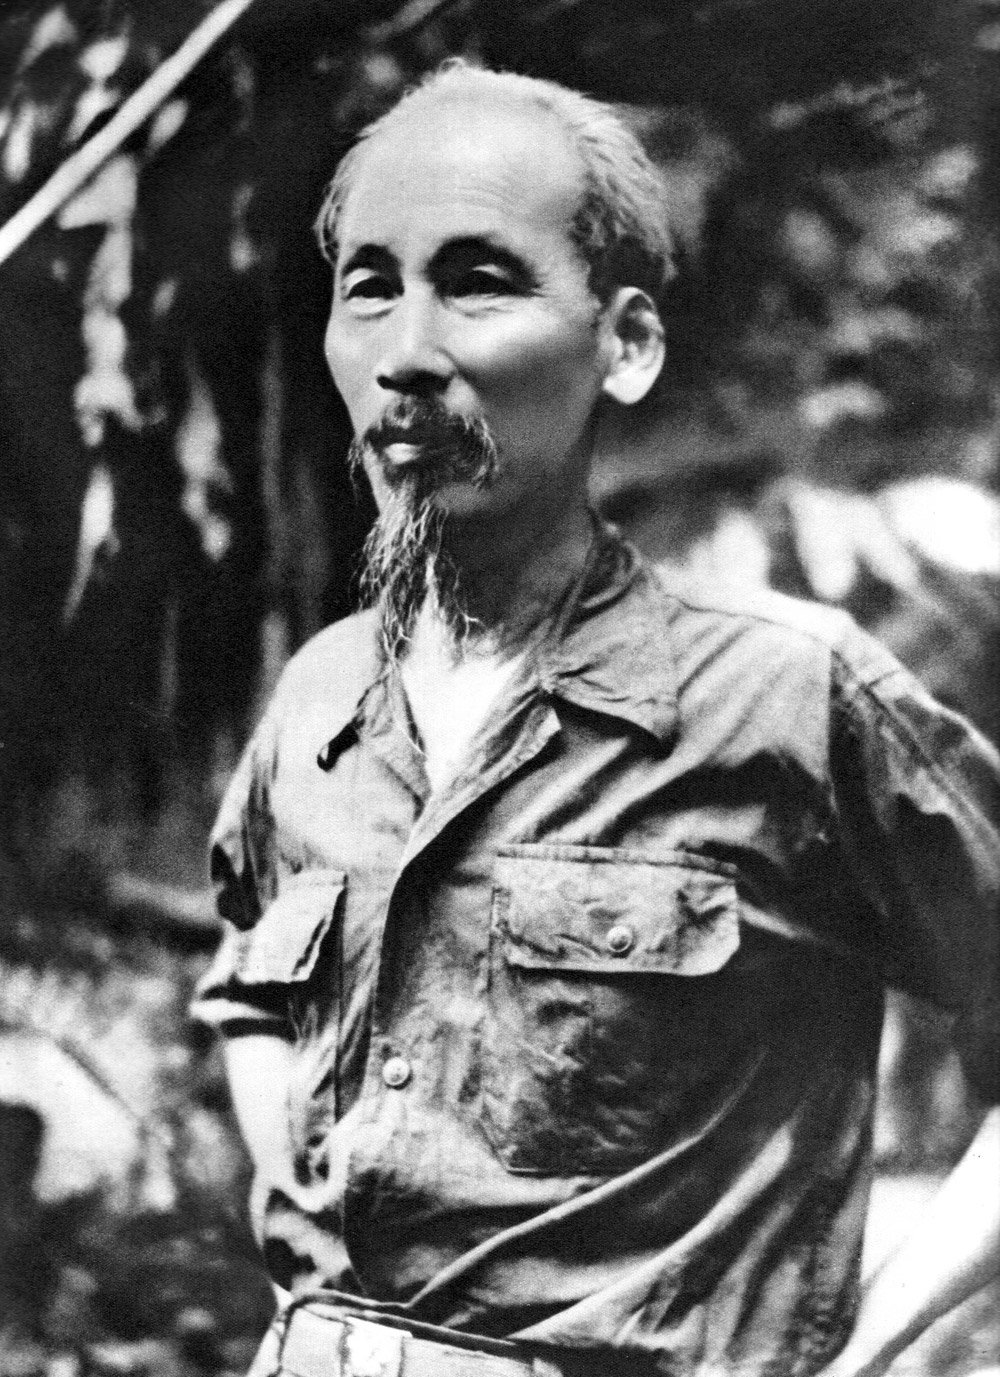 Vietnam's Ho Chi Minh: 'On lynching & the Ku Klux Klan ...